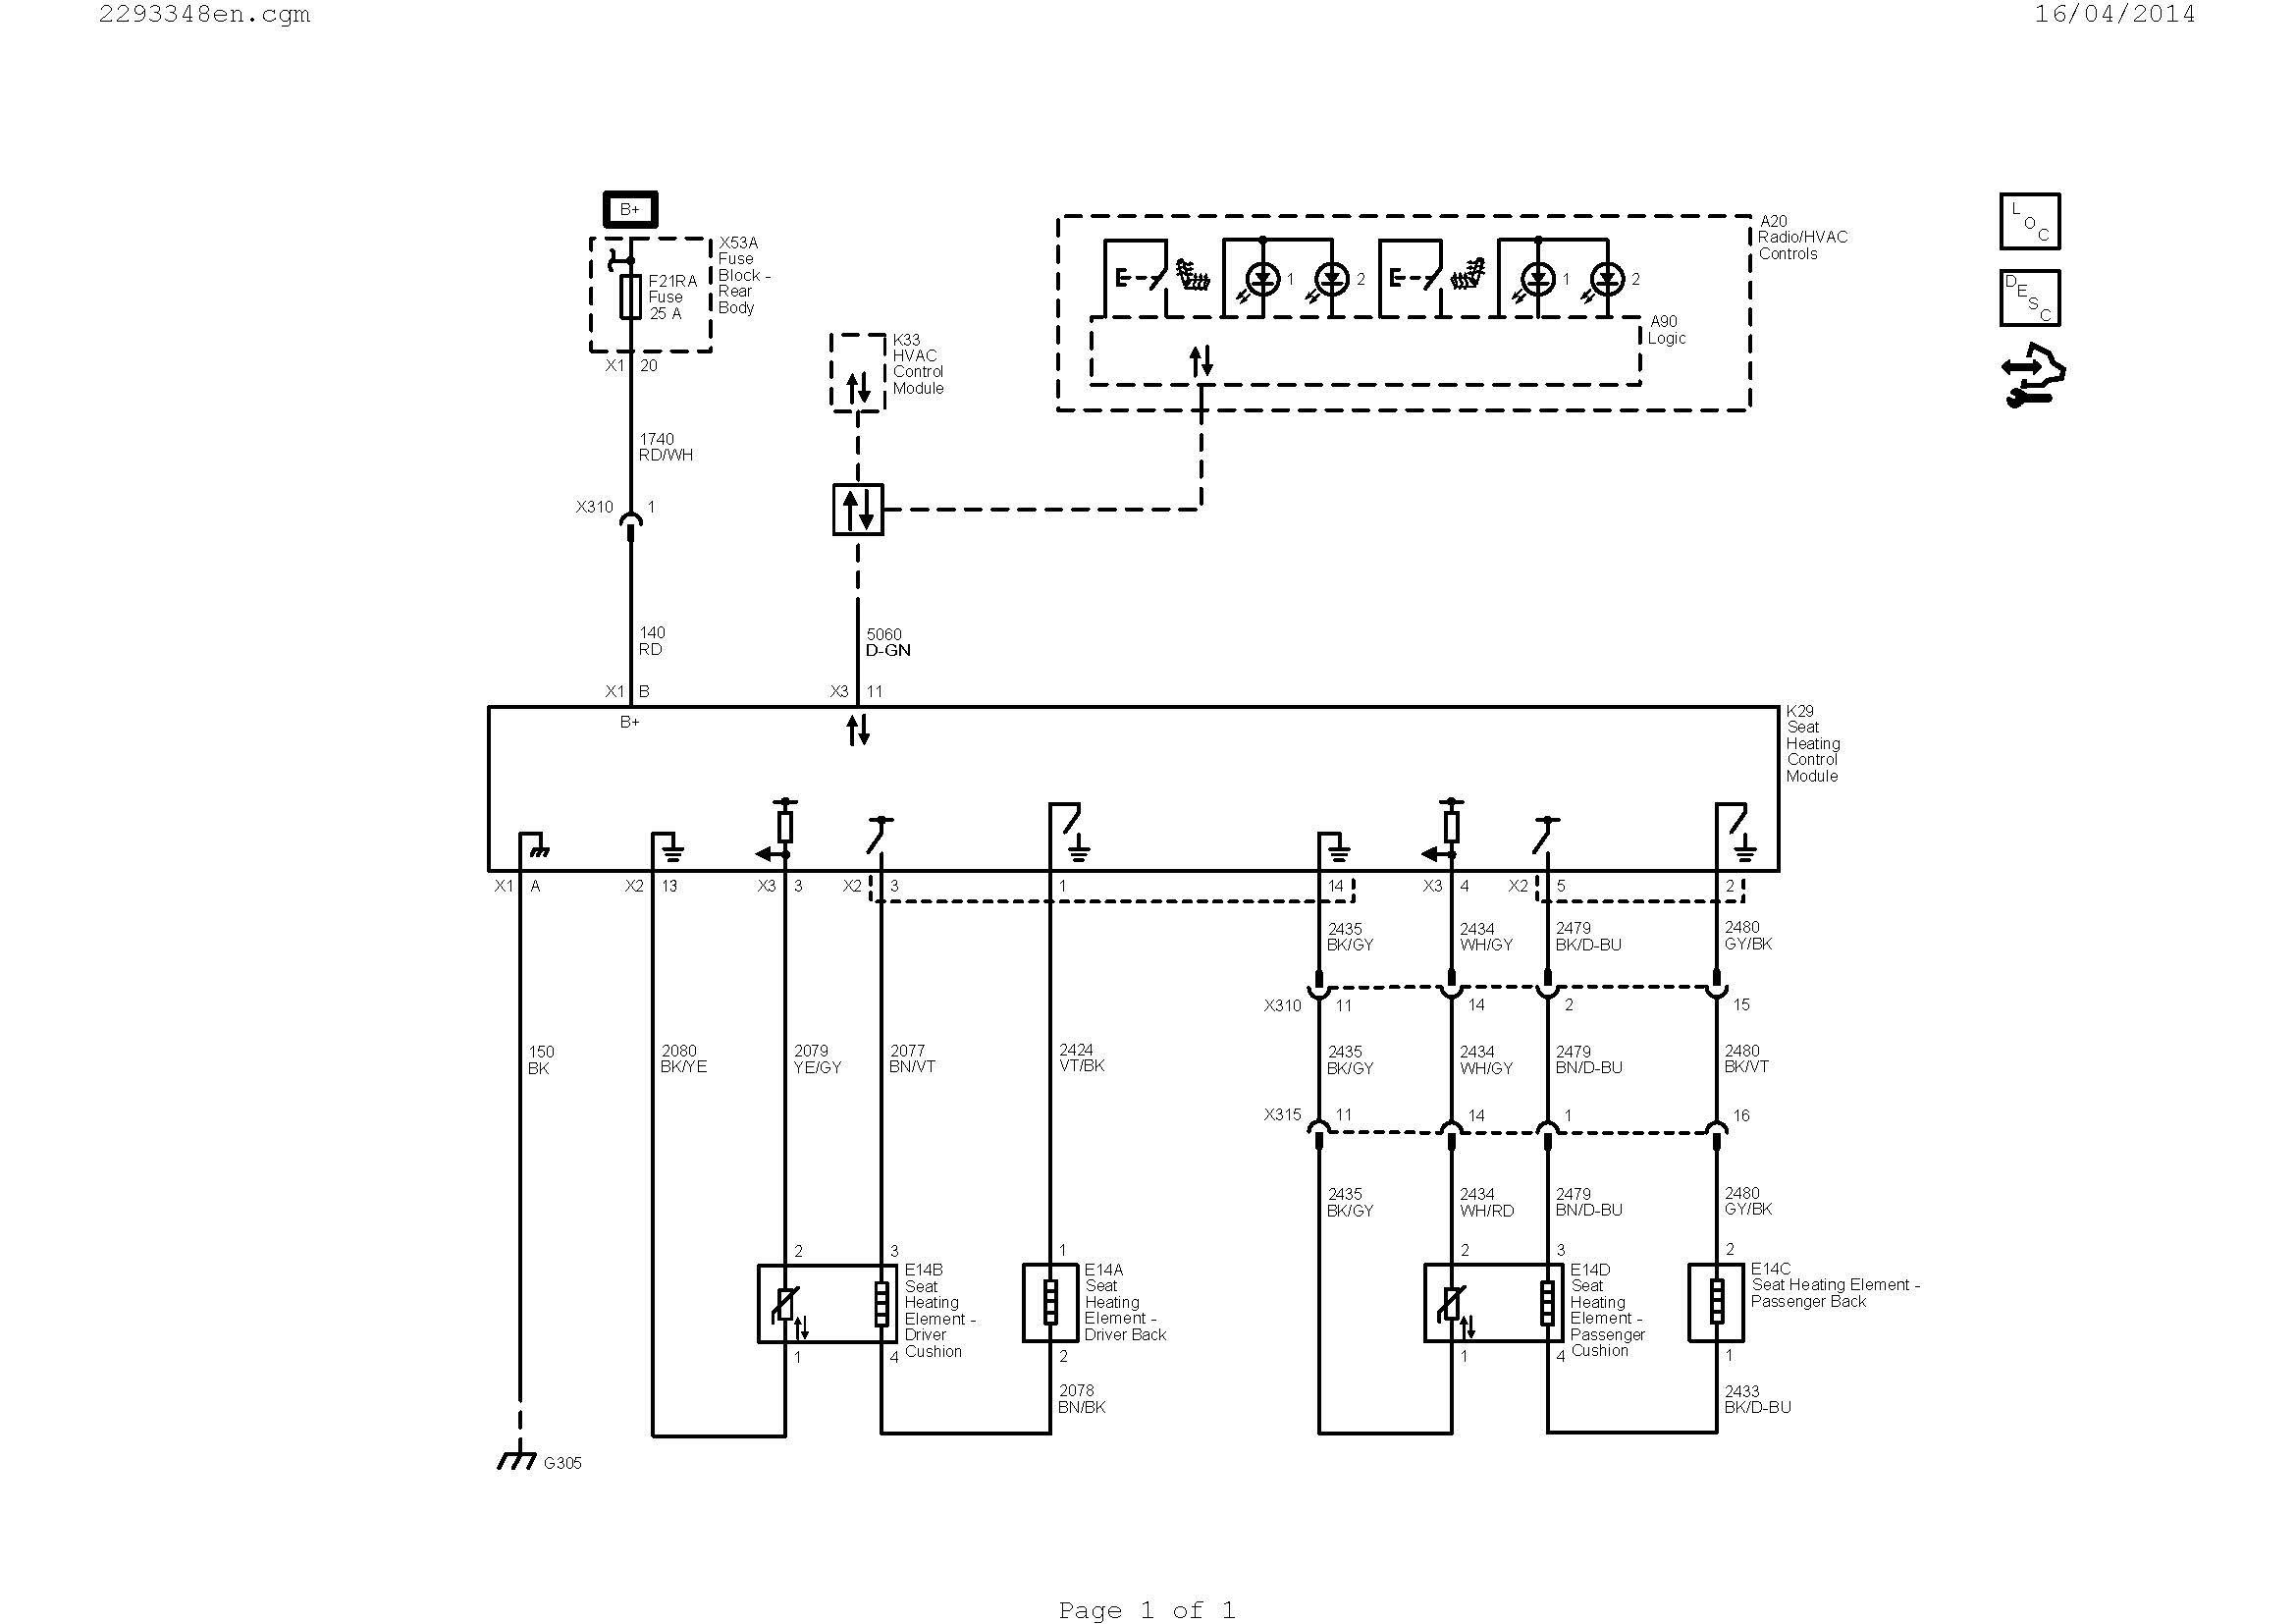 duo therm thermostat wiring diagram collection duo therm thermostat wiring diagram duo therm furnace wiring #14